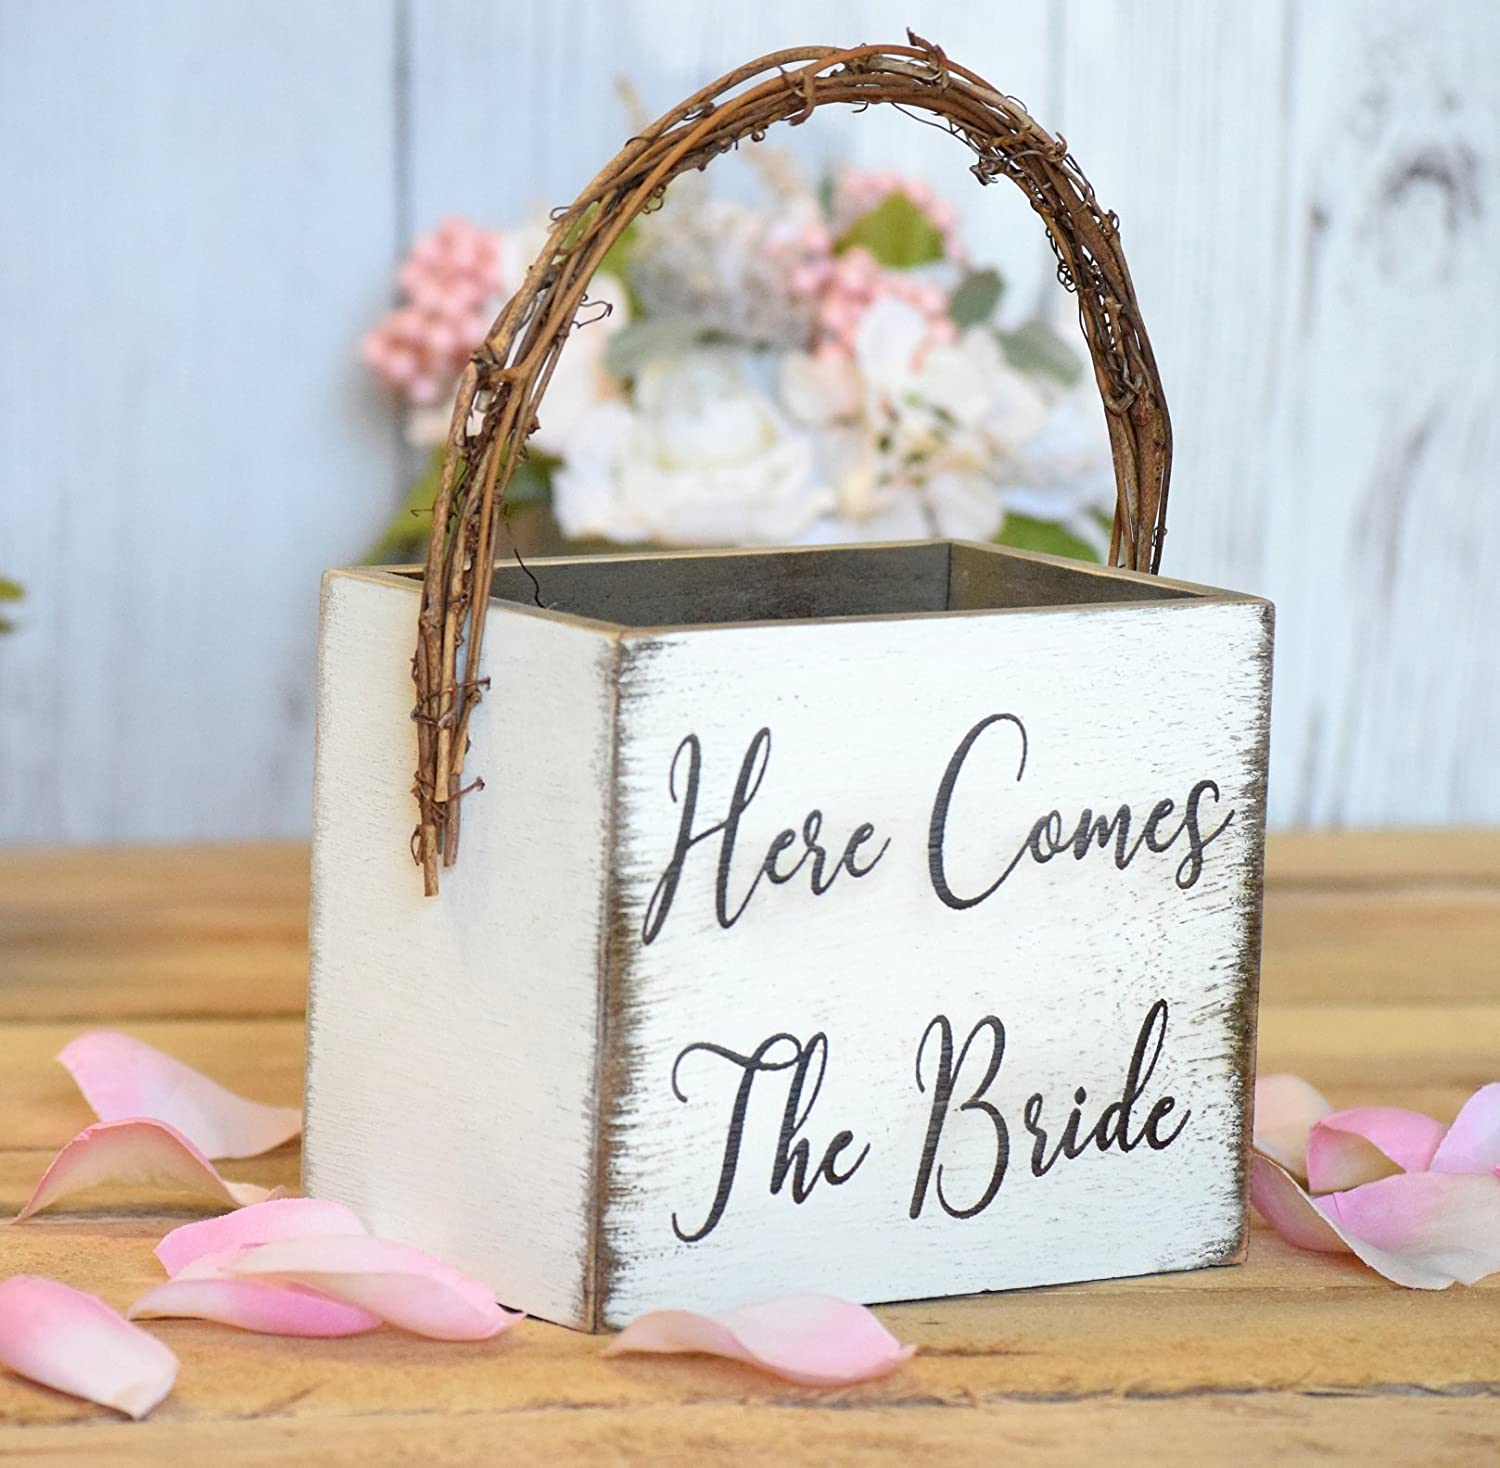 Amazon.com: Here Comes The Bride Rustic Flower Girl Basket ...